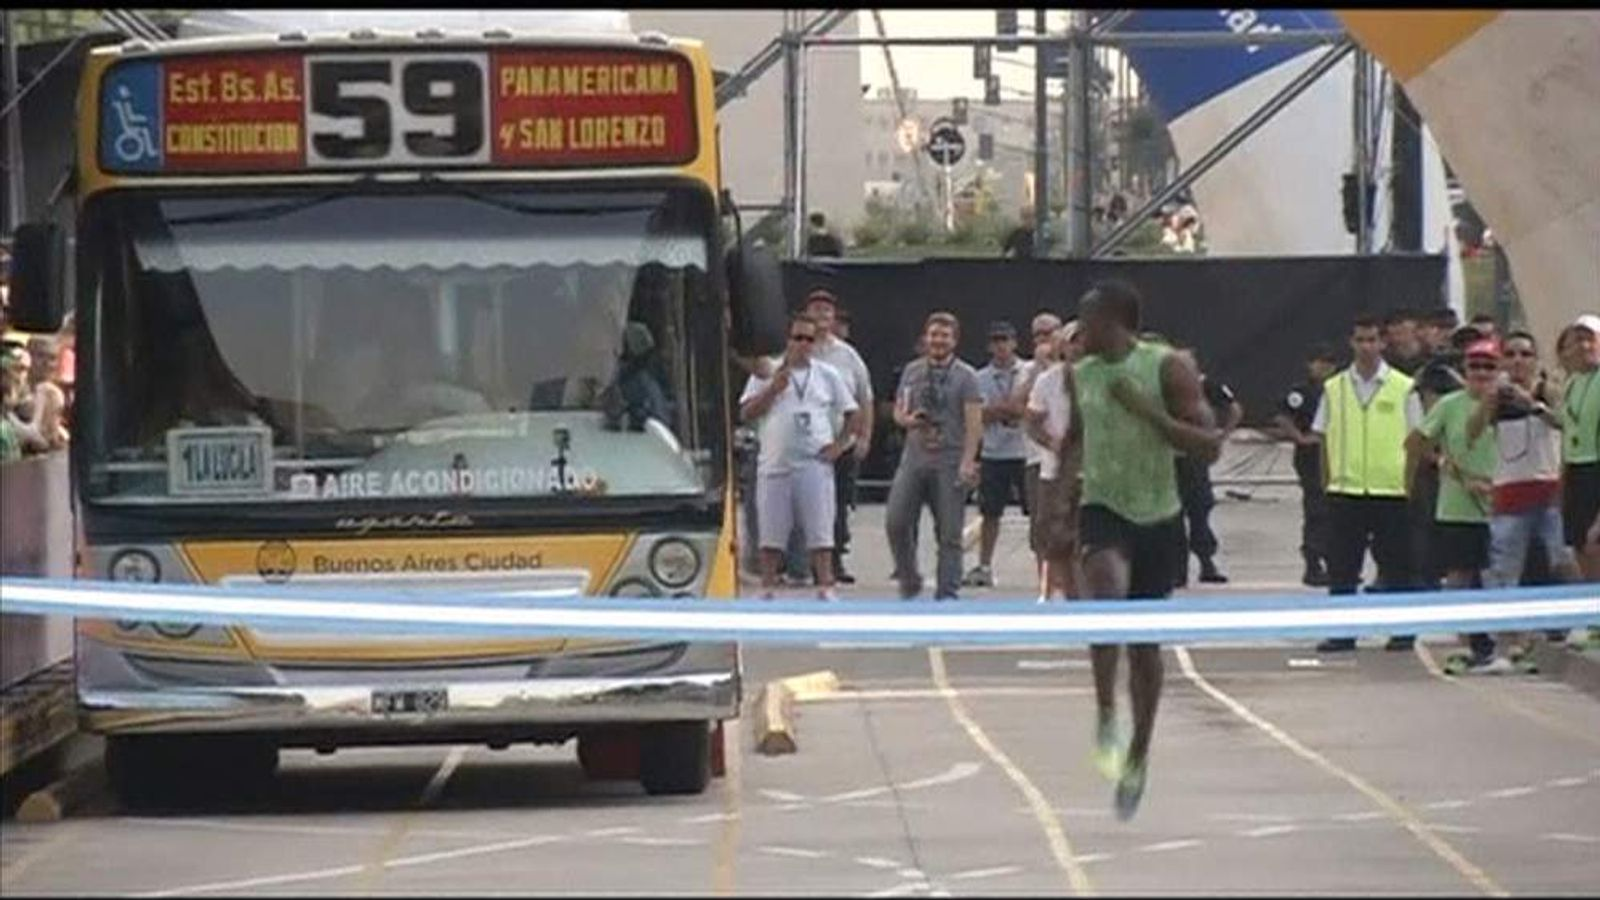 Usain Bolt runs against bus in Buenos Aires